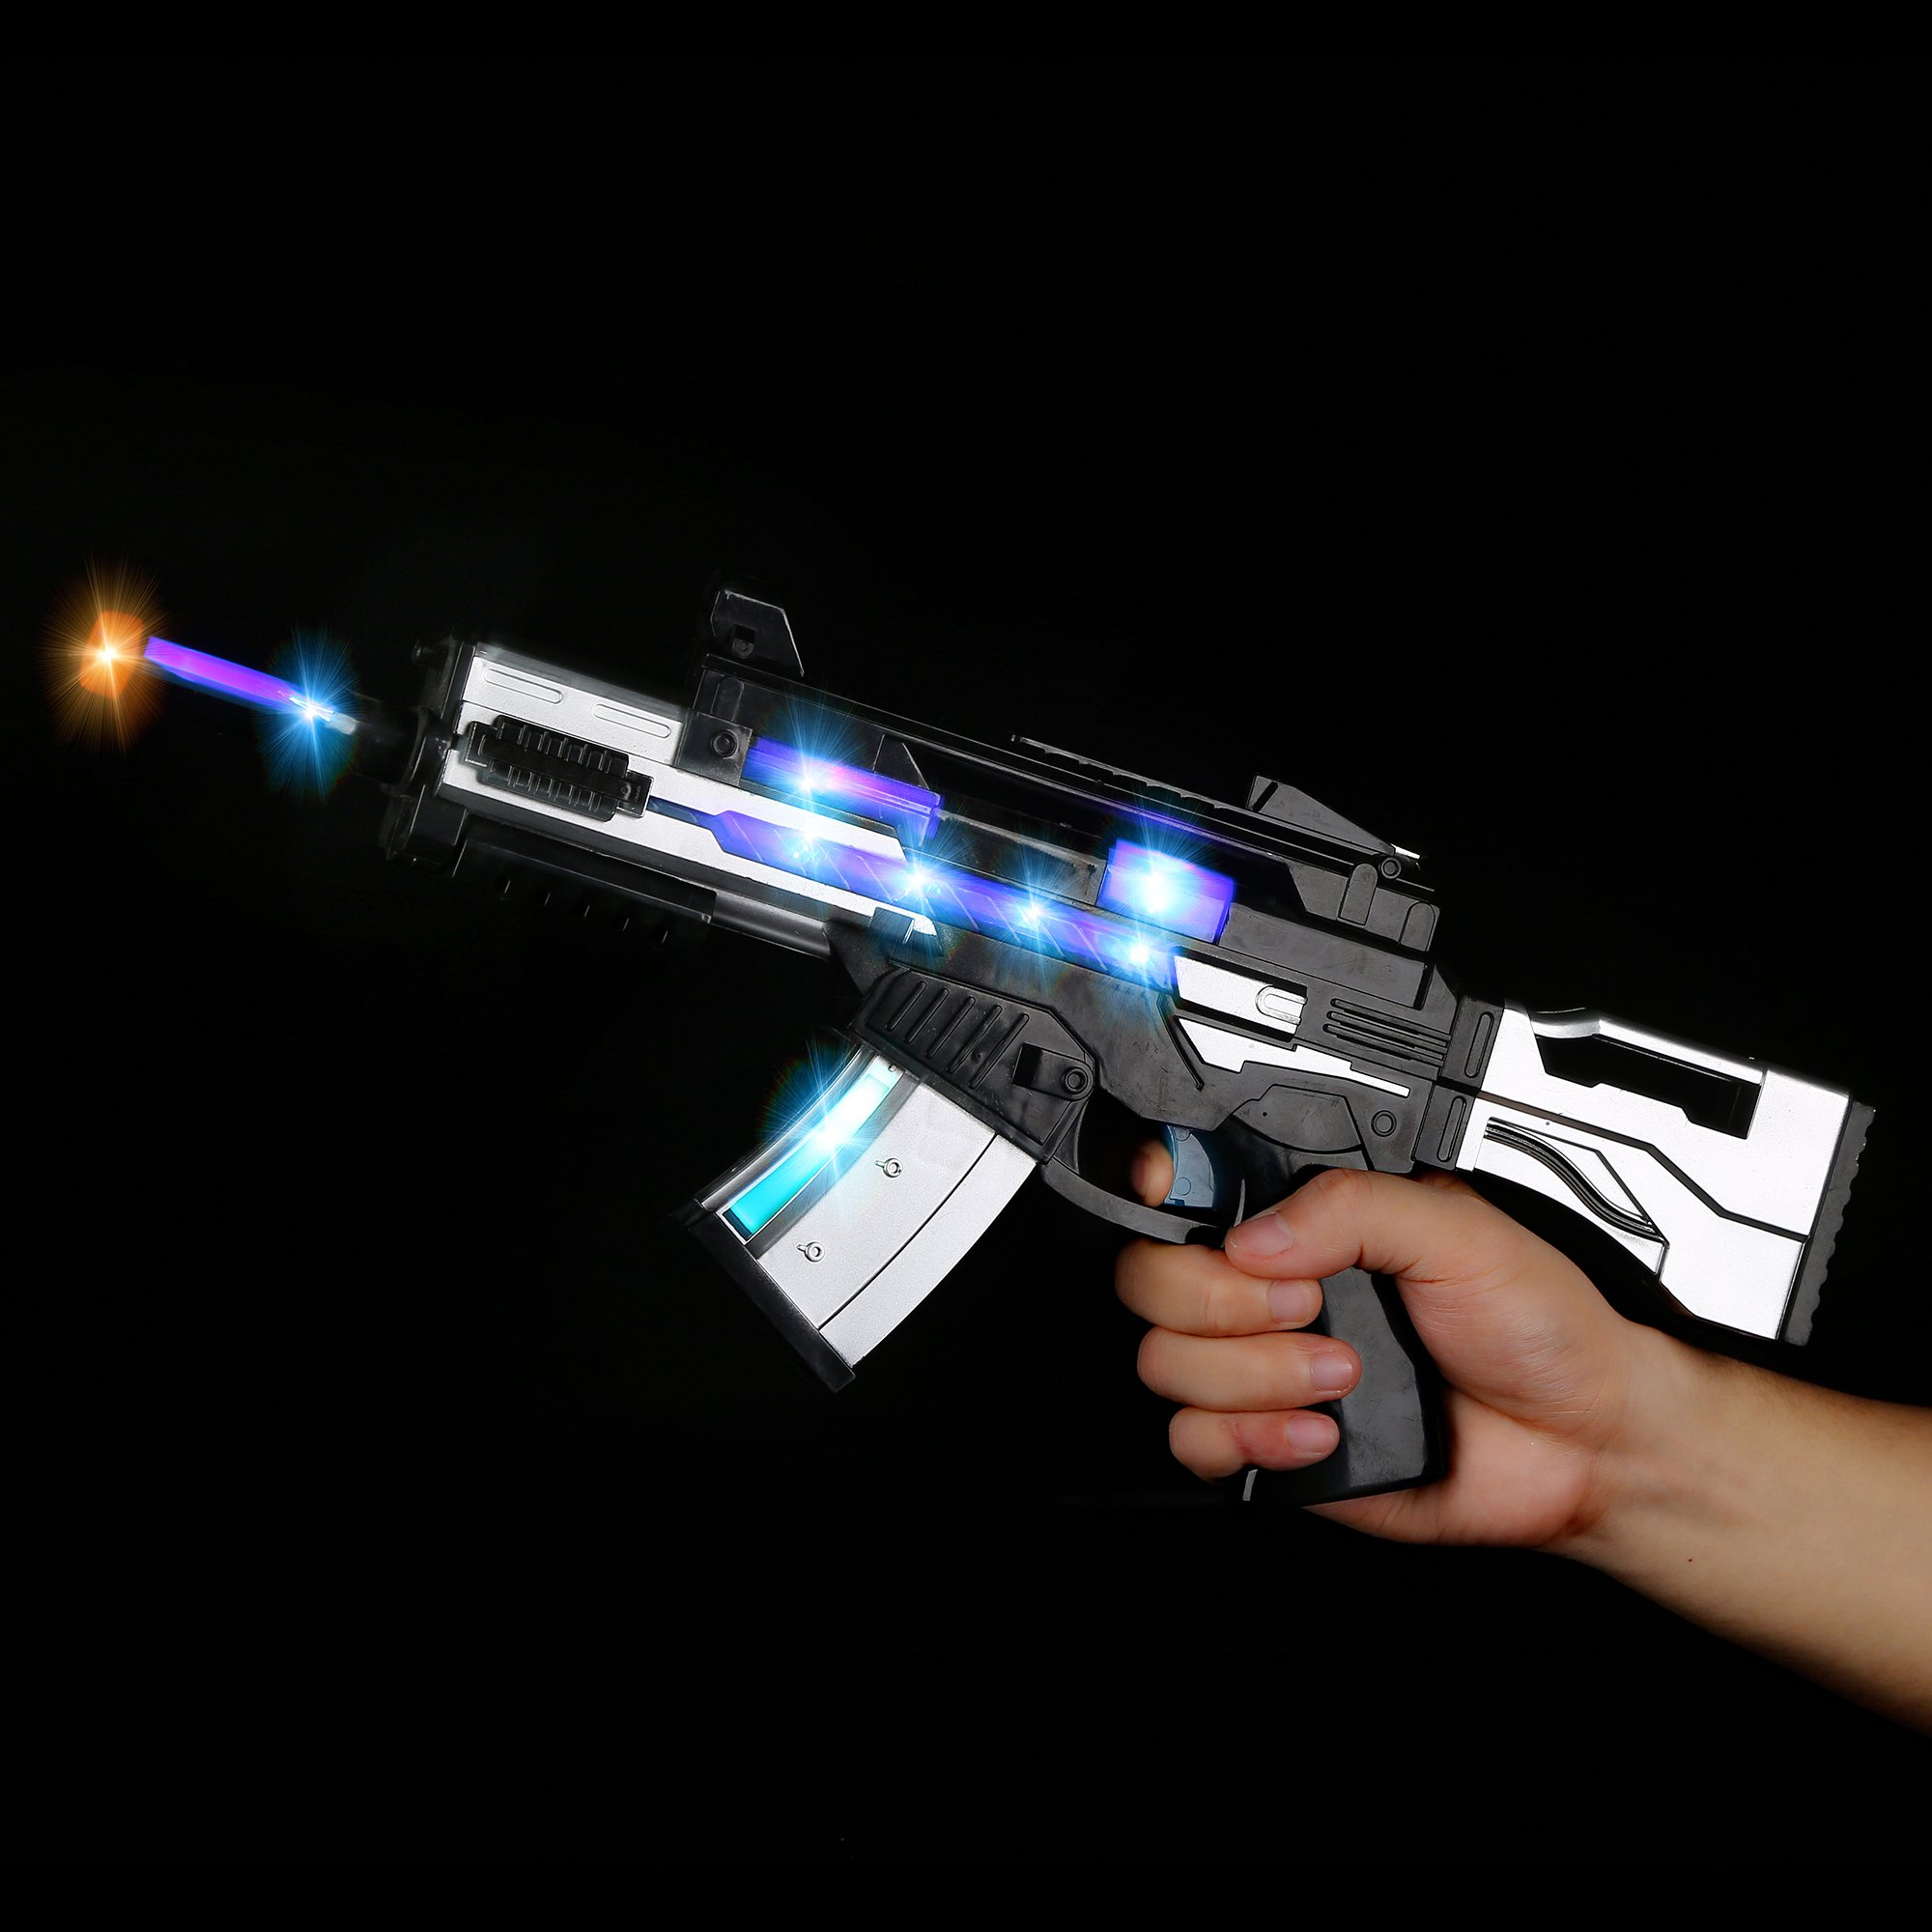 Fun Central AU491 17 Inch LED Light Up SW Blaster with Sounds Effect, LED Blaster Toy Gun, Light Up Blaster Gun for kids, Blaster Gun - for Party Favors, Gifts, Prizes, Rewards, Giveaways